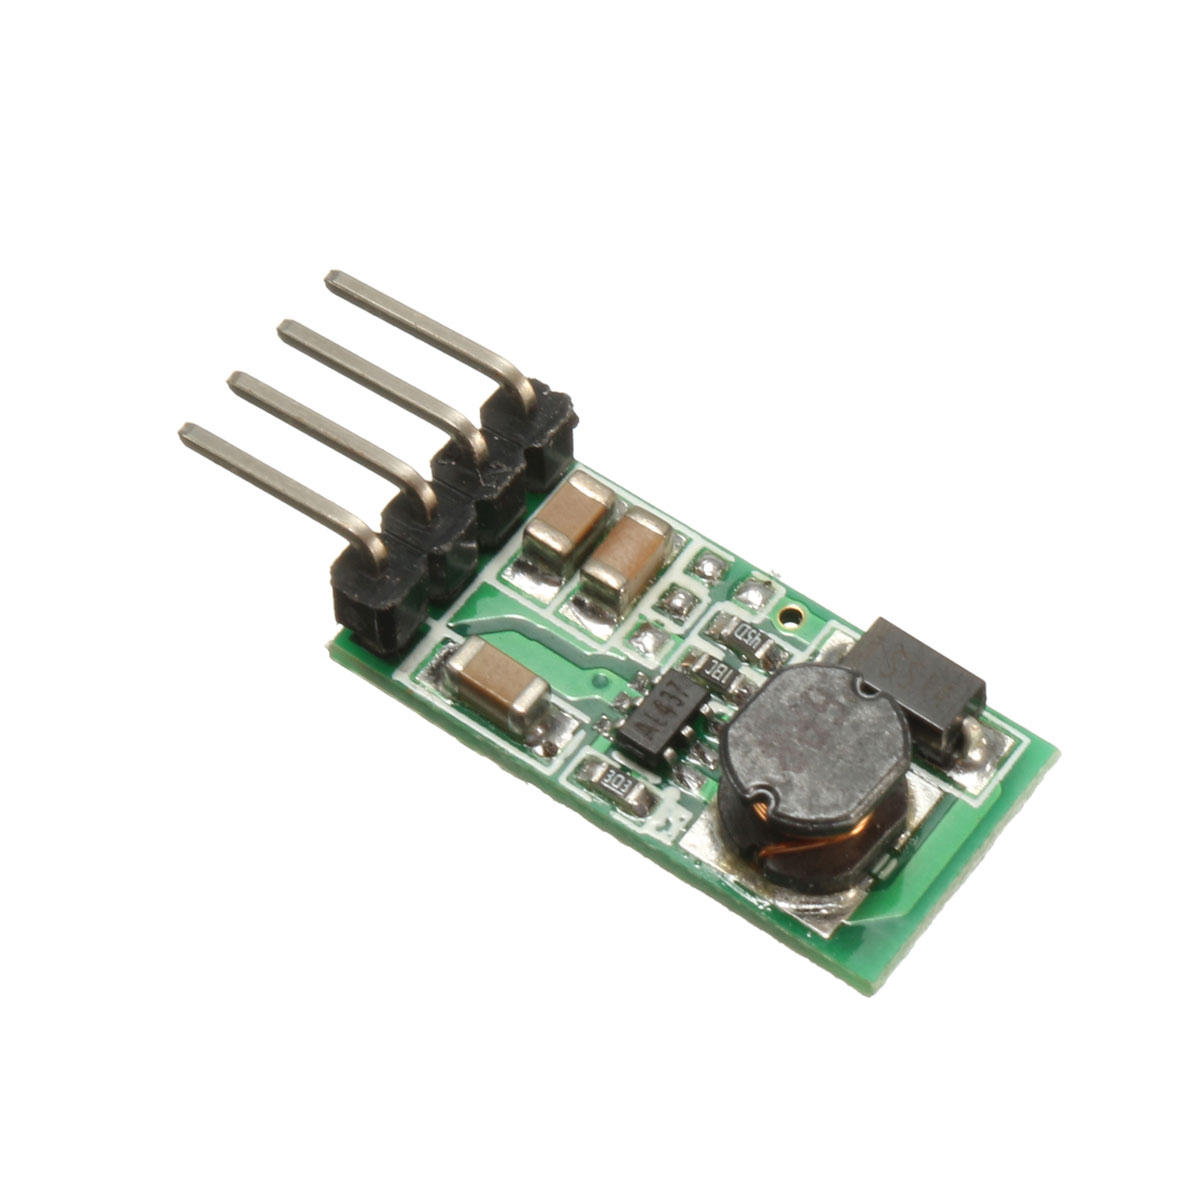 5Pcs DC 3.3V 3.7V 5V 6V to 12V Boost Voltage Regulator Module Converter Step-up Power Supply Board